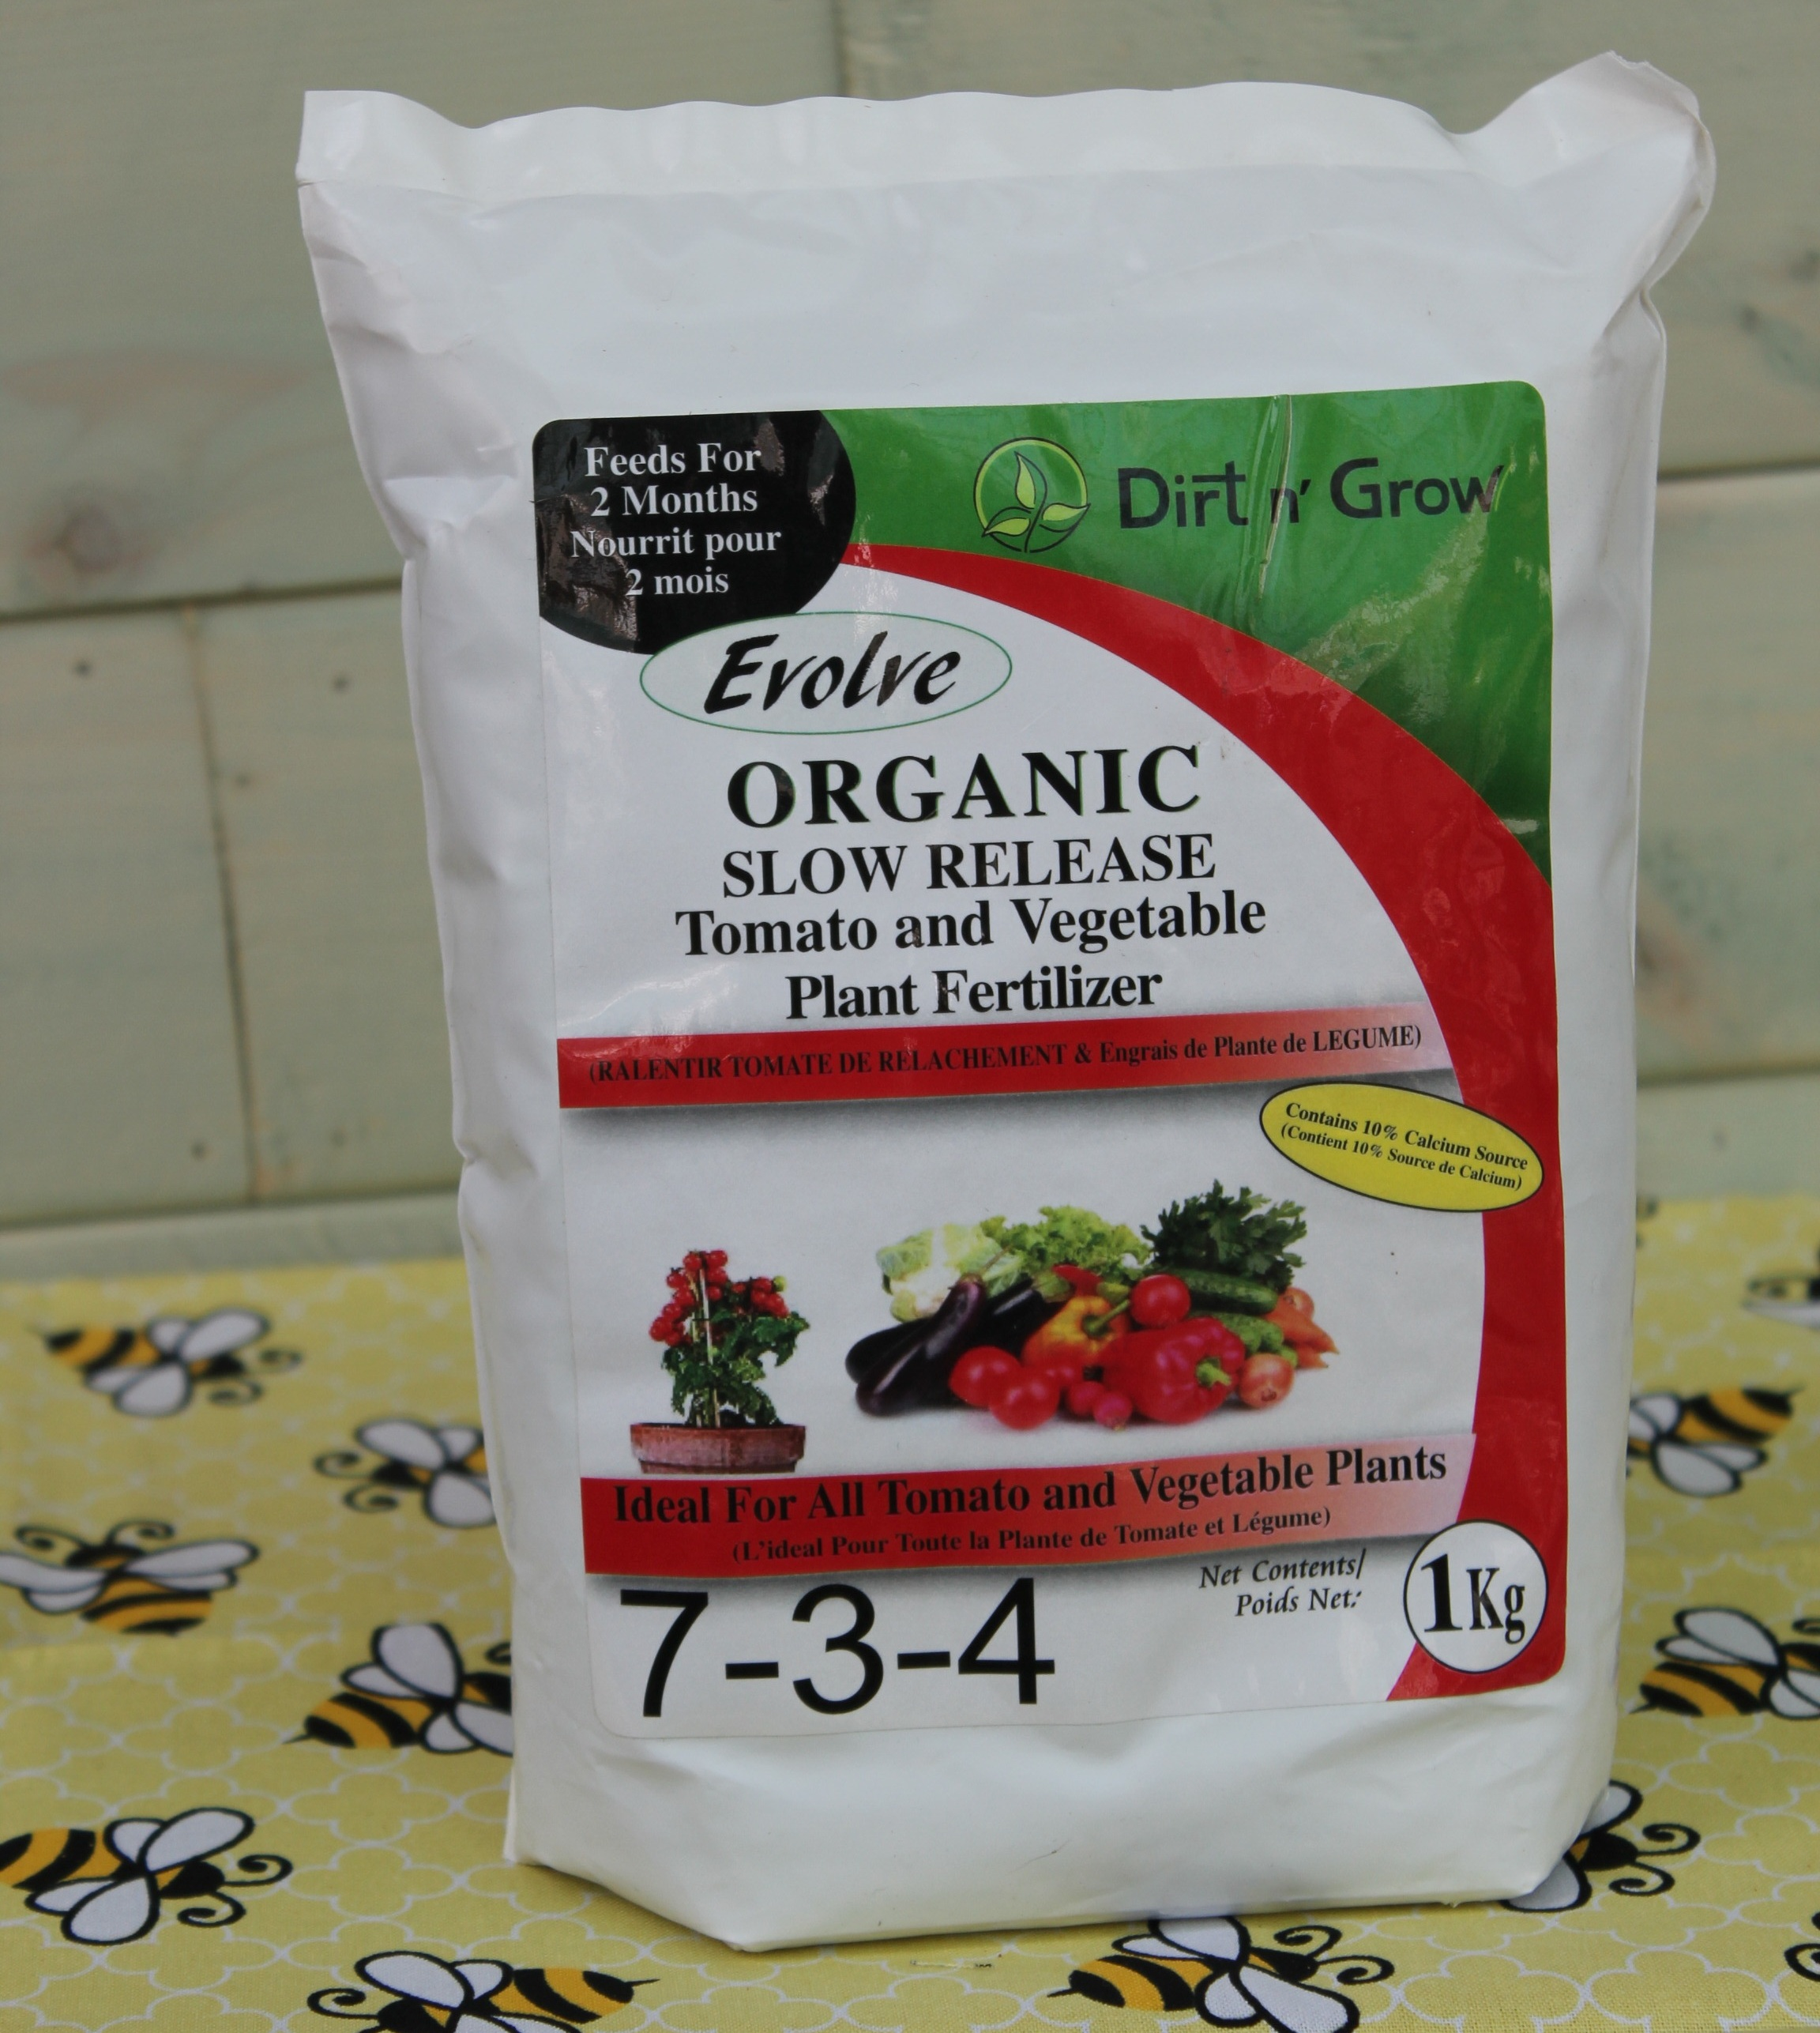 ORGANIC SLOW RELEASE TOMATO AND VEGETABLE